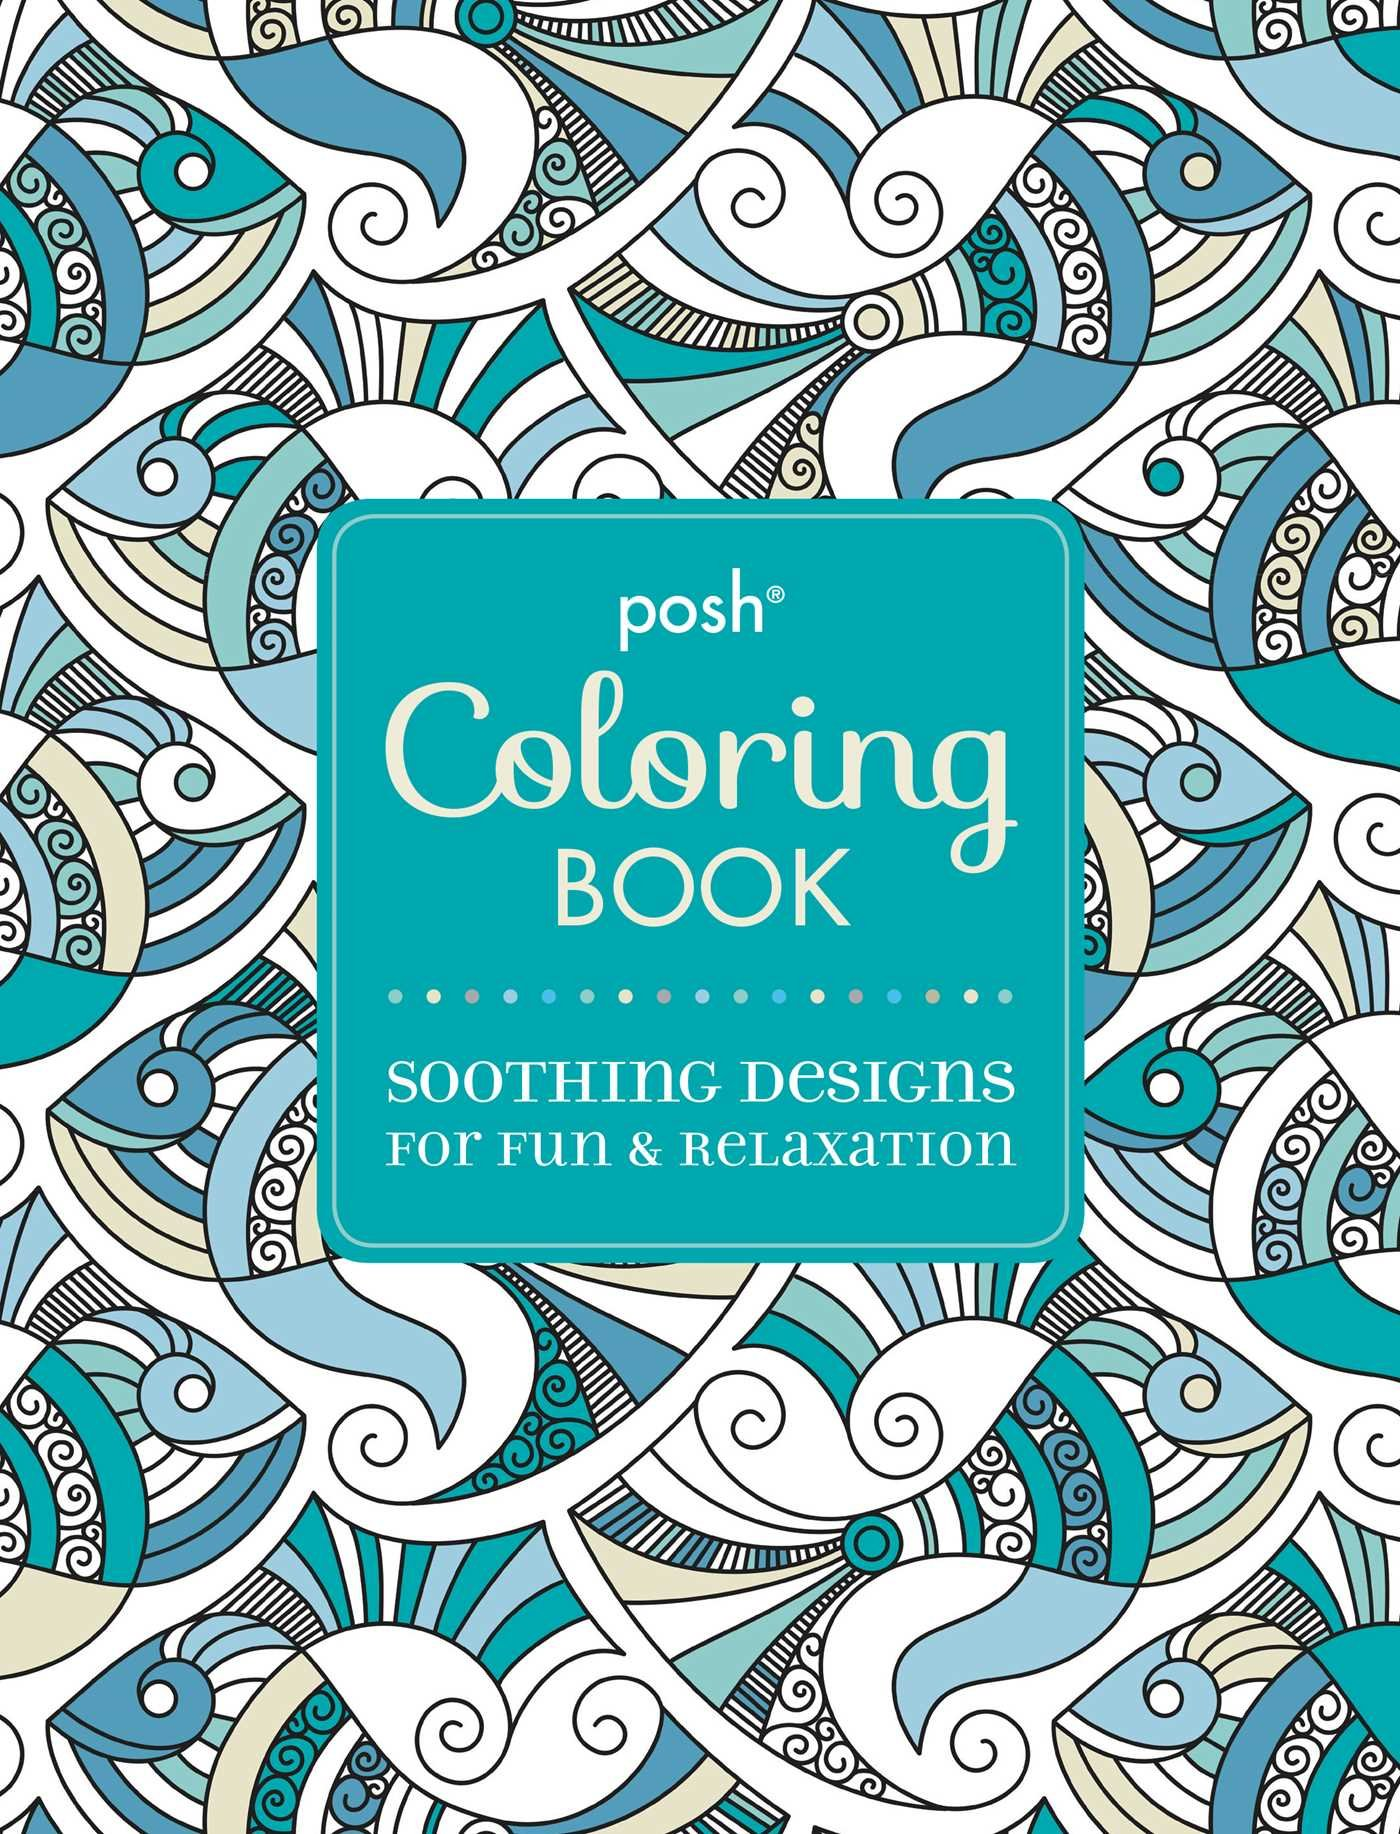 Publishers for adult coloring books - Amazon Com Posh Adult Coloring Book Soothing Designs For Fun Relaxation Posh Coloring Books 0050837348899 Andrews Mcmeel Publishing Books